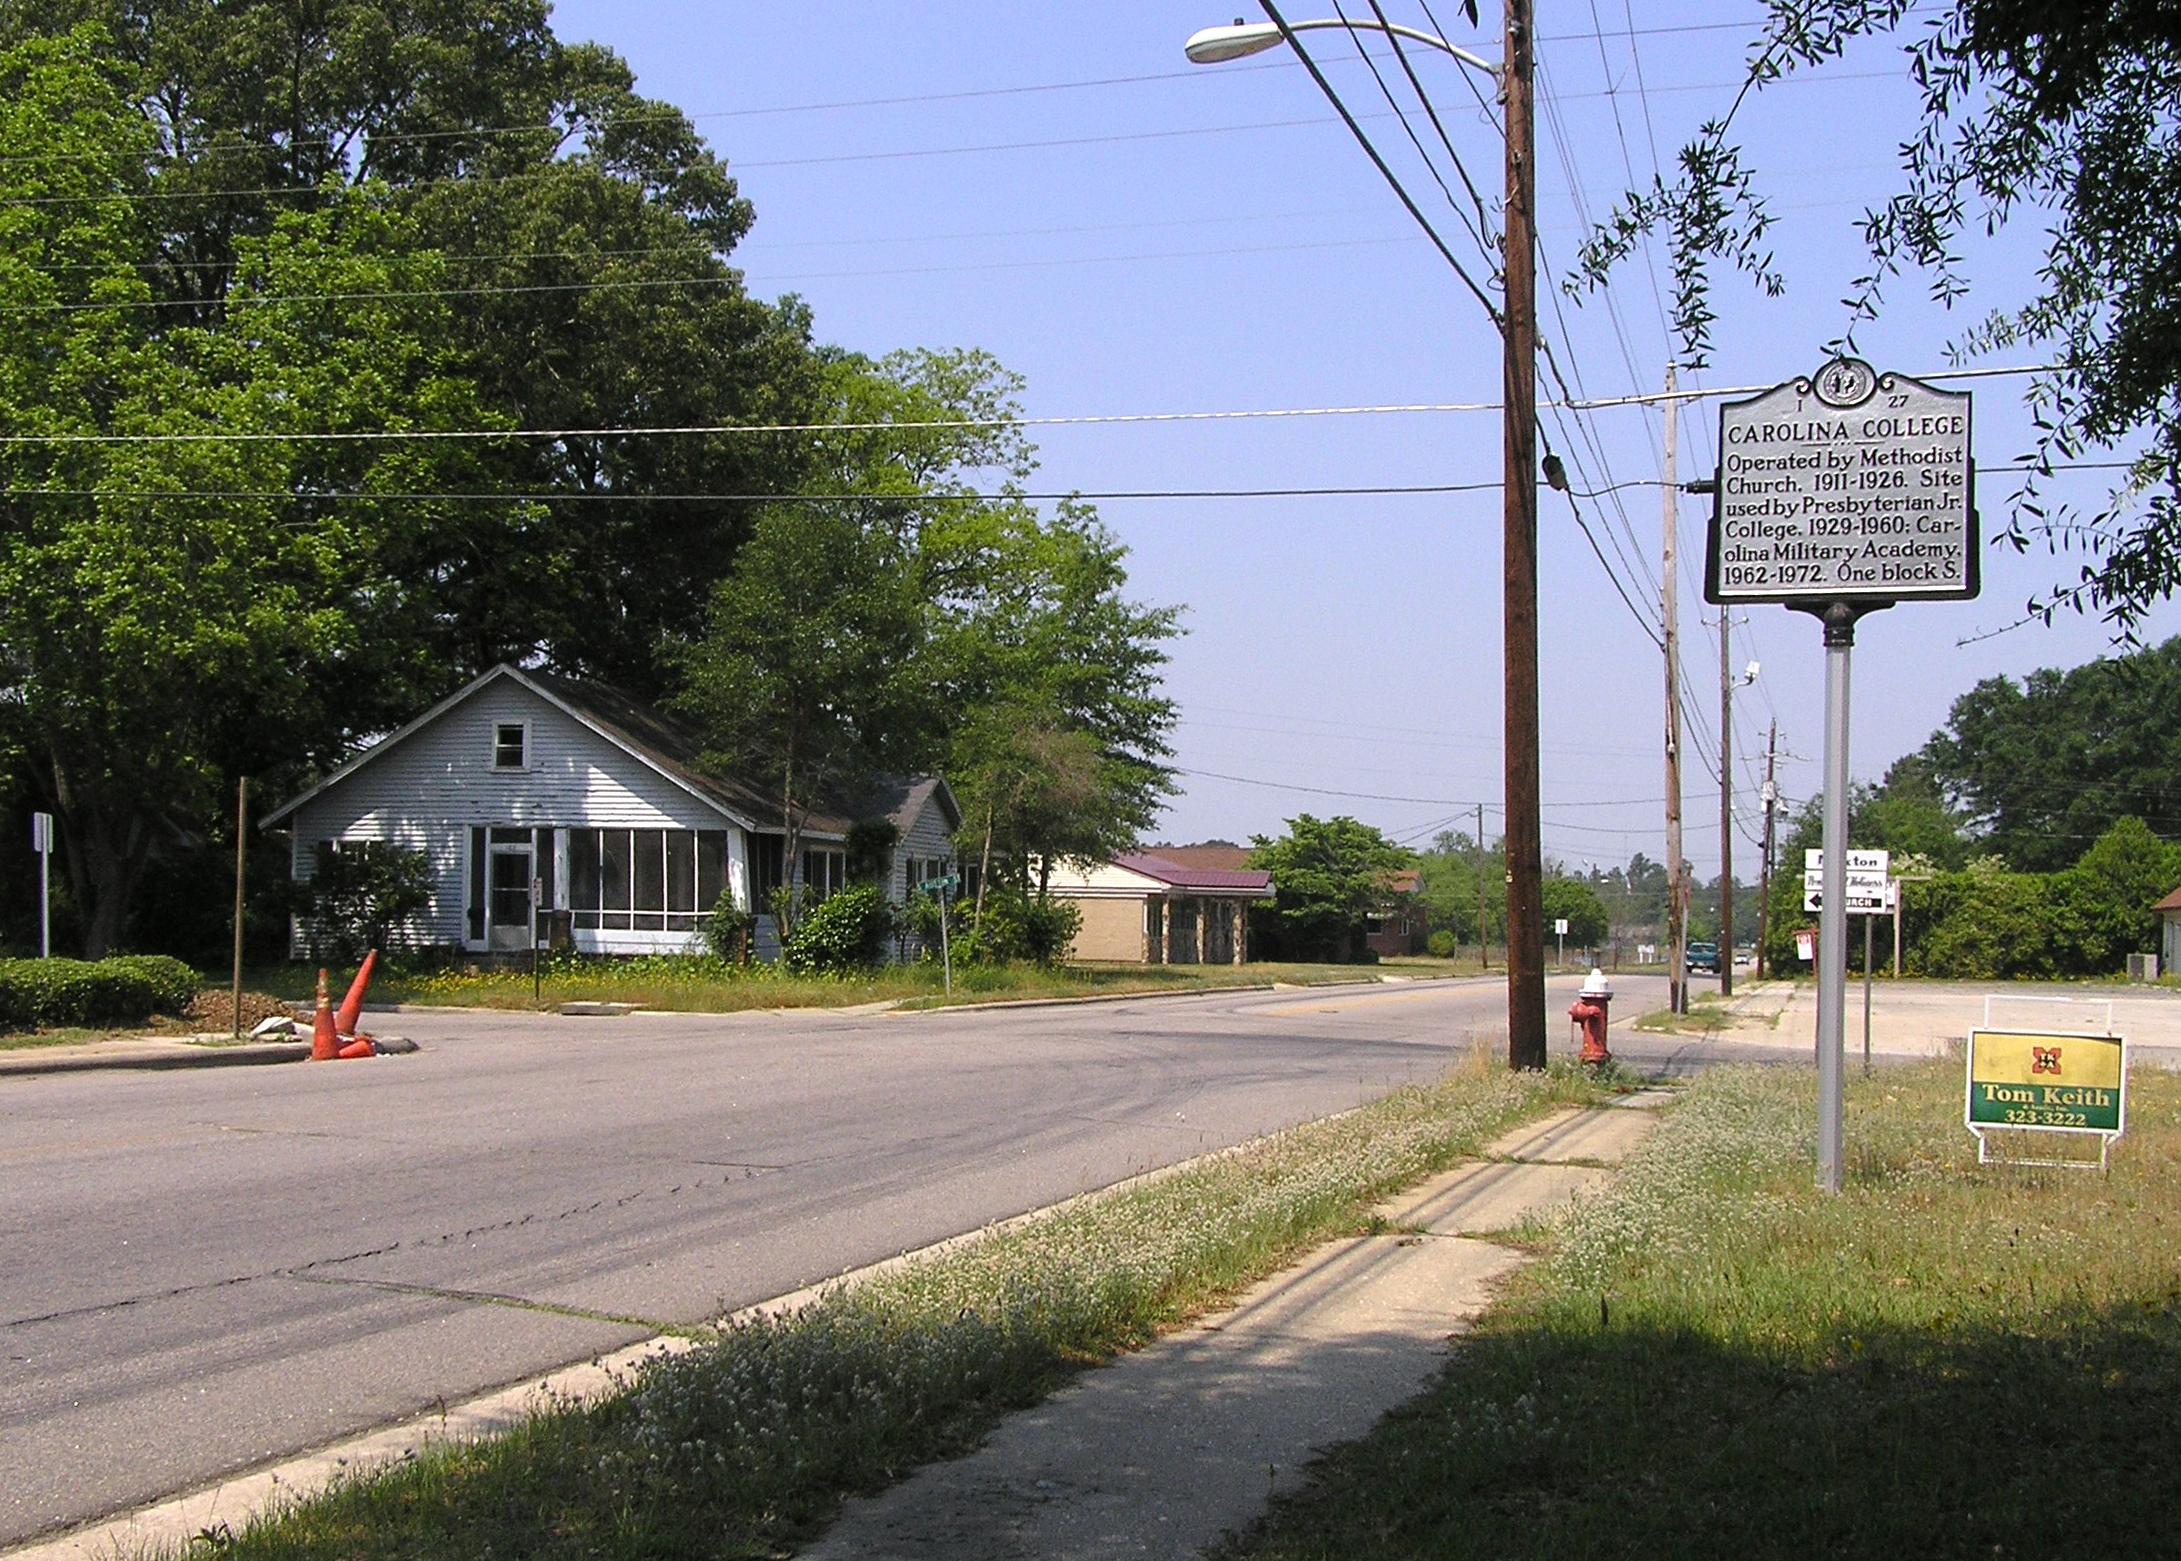 Wide view of the Carolina College Marker